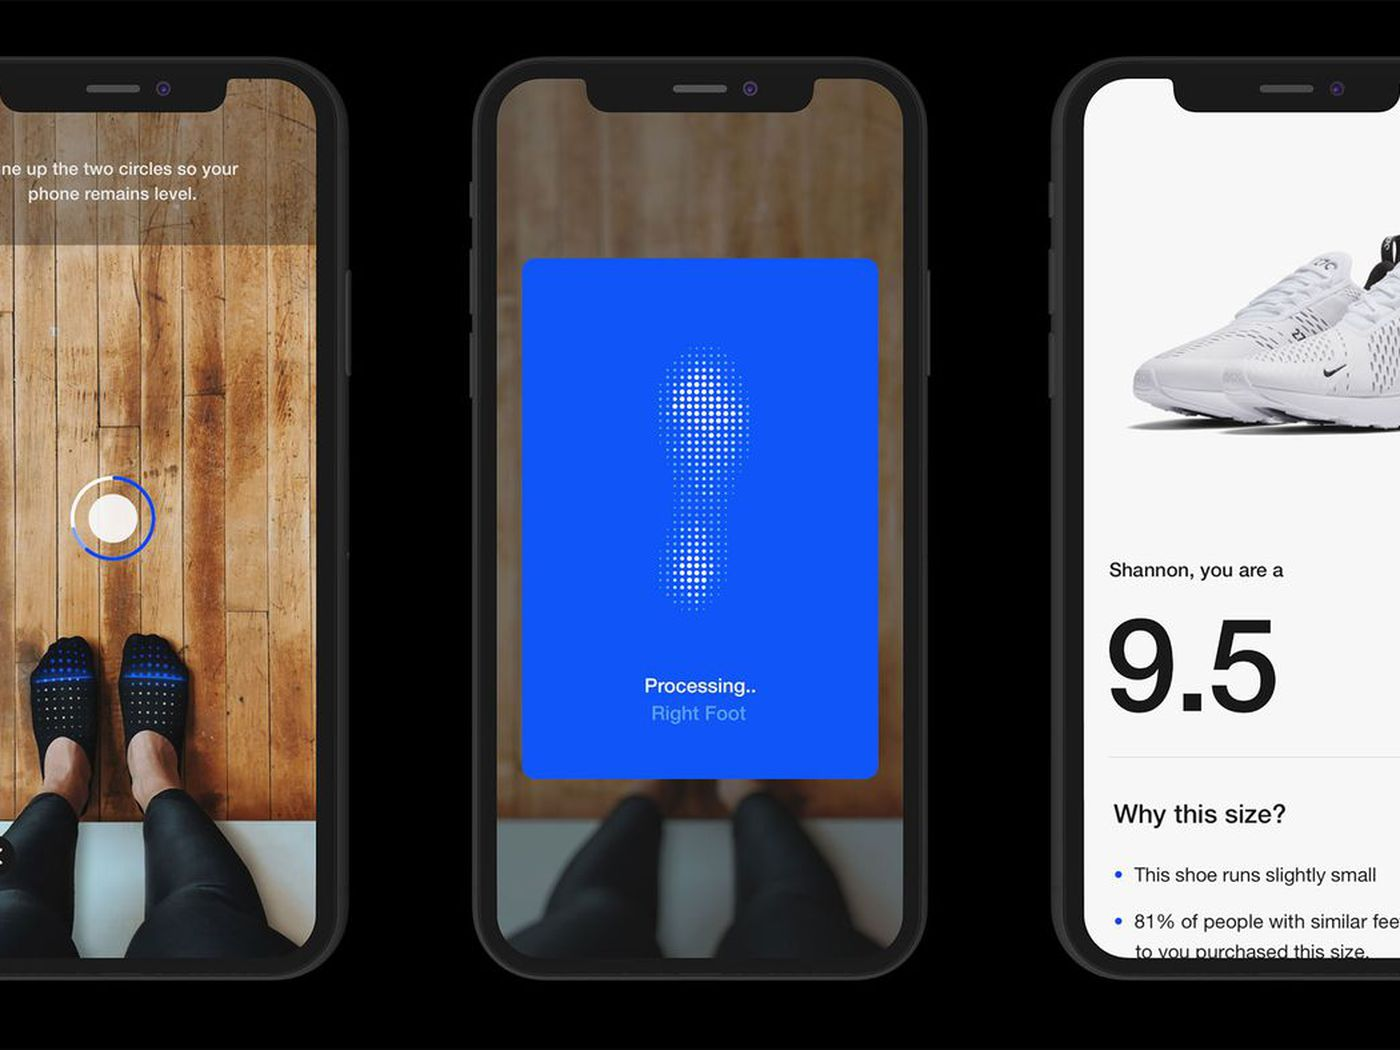 para justificar Celda de poder torre  Nike's new app uses AR to measure your feet to sell you sneakers that fit -  The Verge